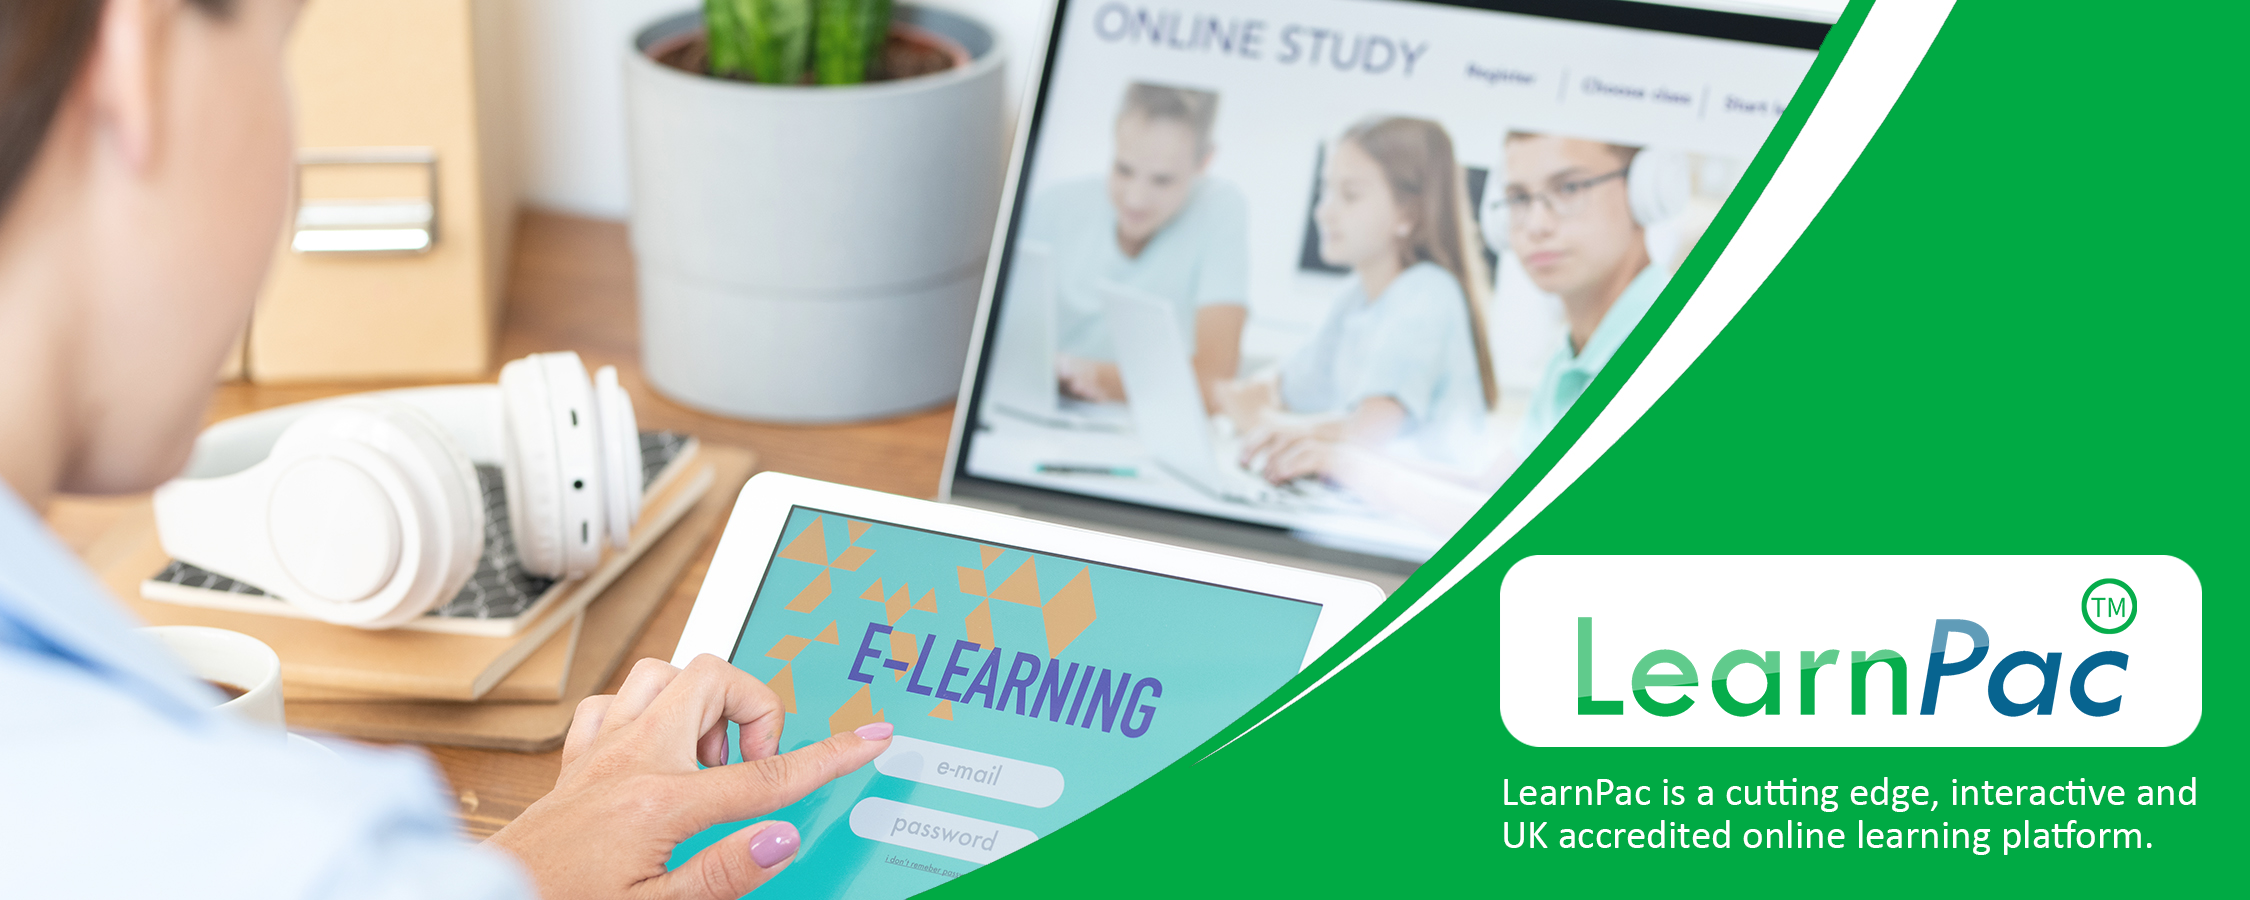 Cryotherapy Training Course - Online Learning Courses - E-Learning Courses - LearnPac Systems UK -